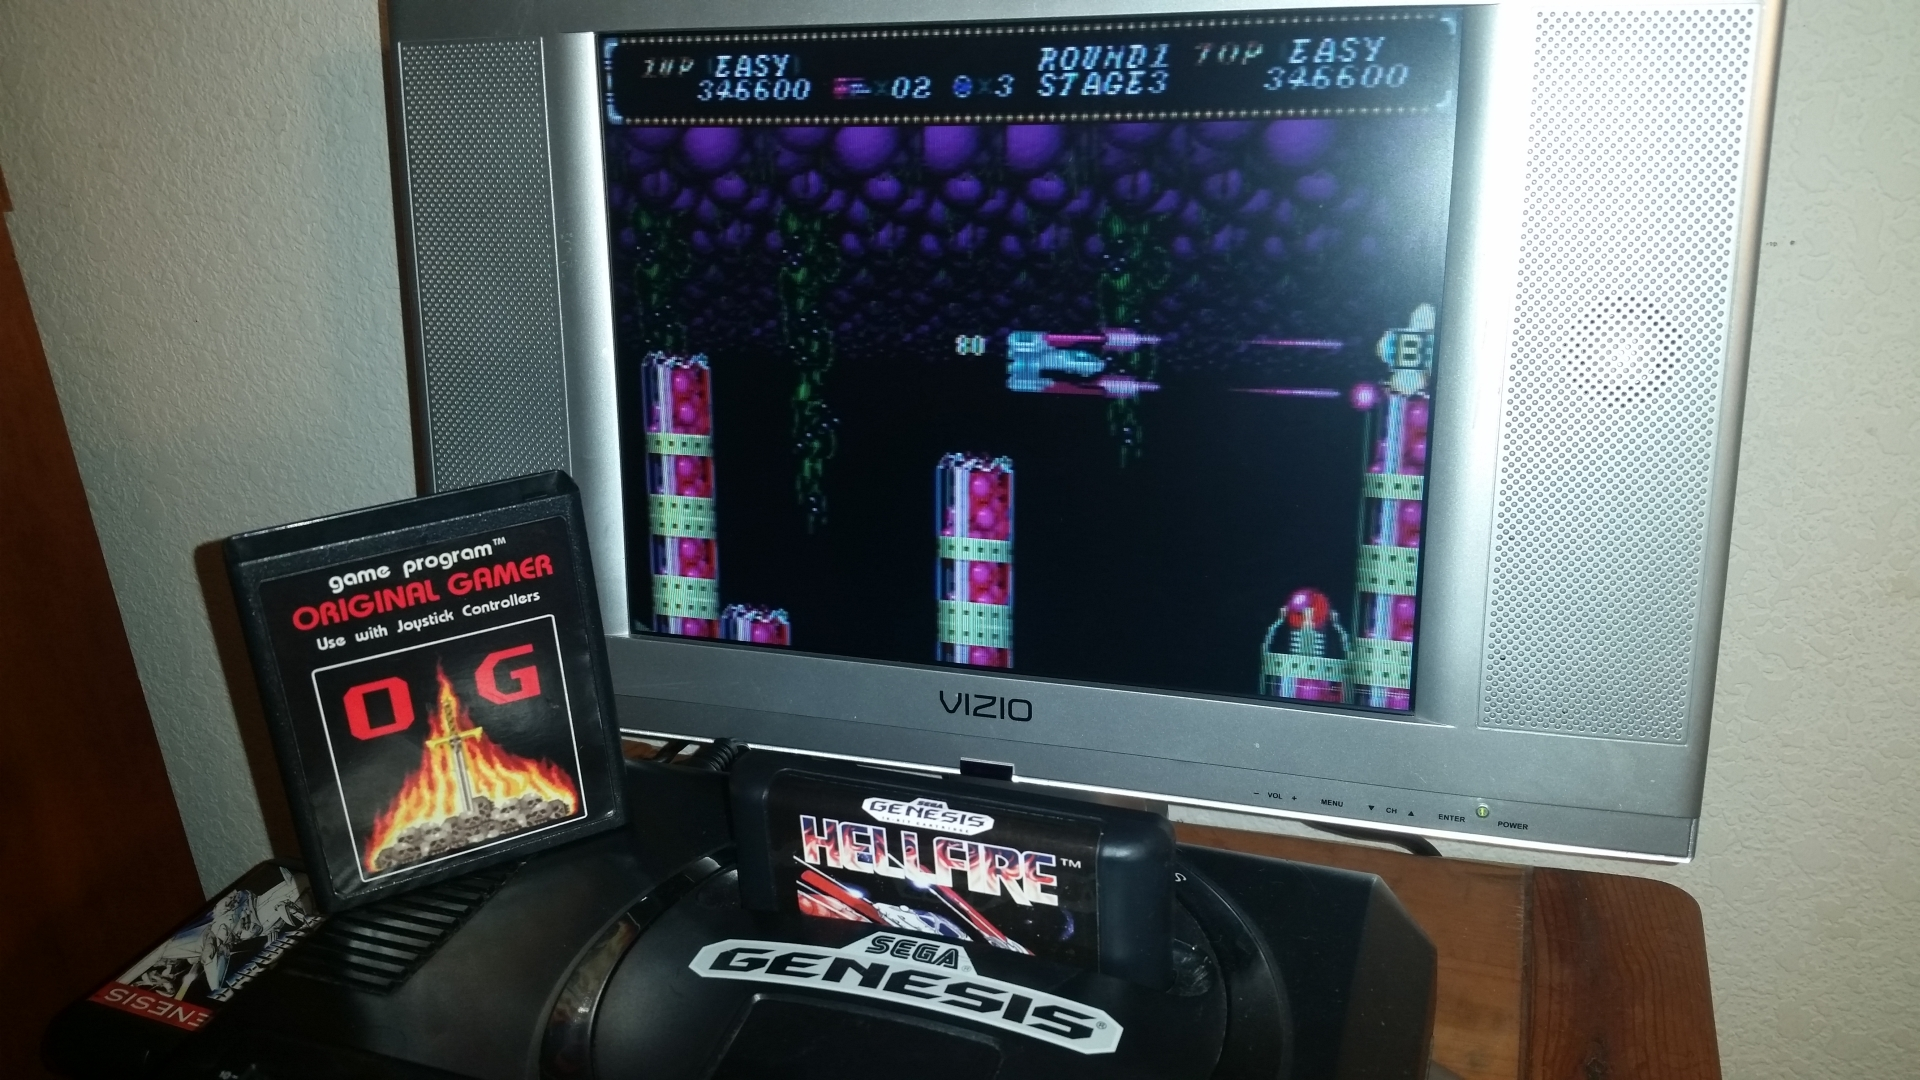 OriginalGamer: Hellfire: Easy (Sega Genesis / MegaDrive) 346,600 points on 2016-11-17 00:59:34